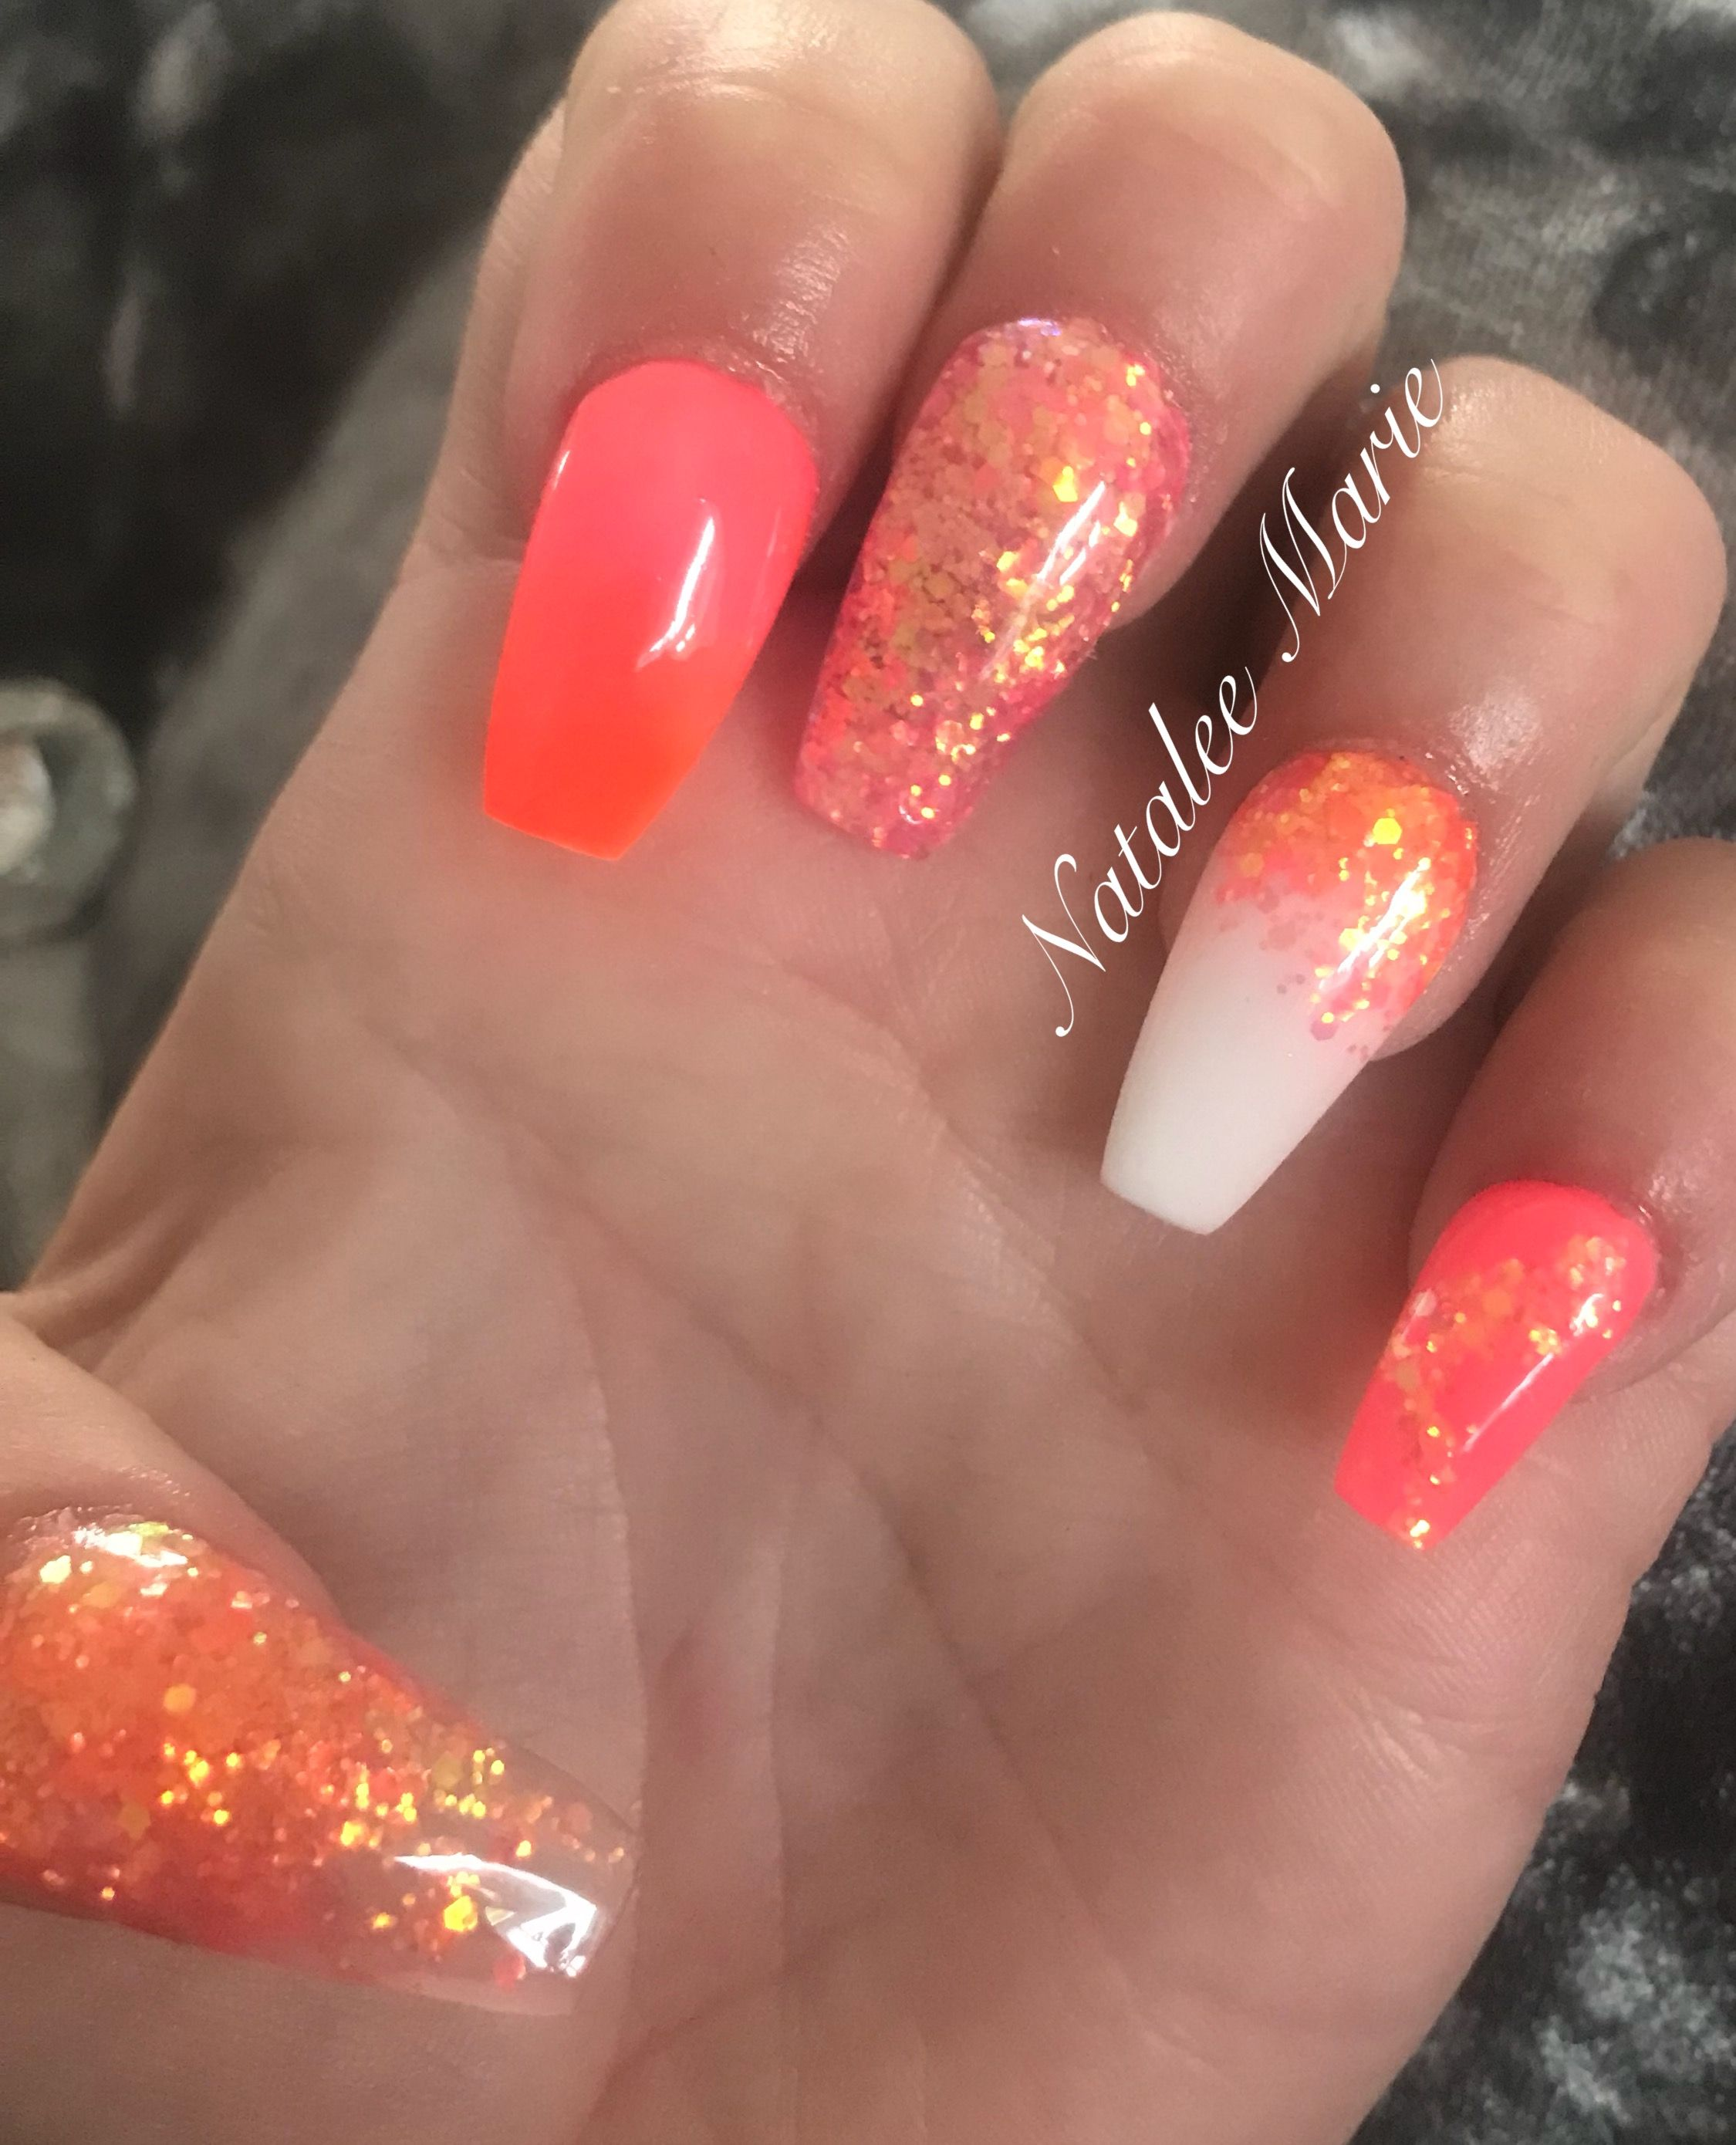 Pink Orange And White Nails Coral Nails Glitter Nails Coffin Nails Summer Nails Coral Nails Coral Nails Glitter Coffin Nails Glitter